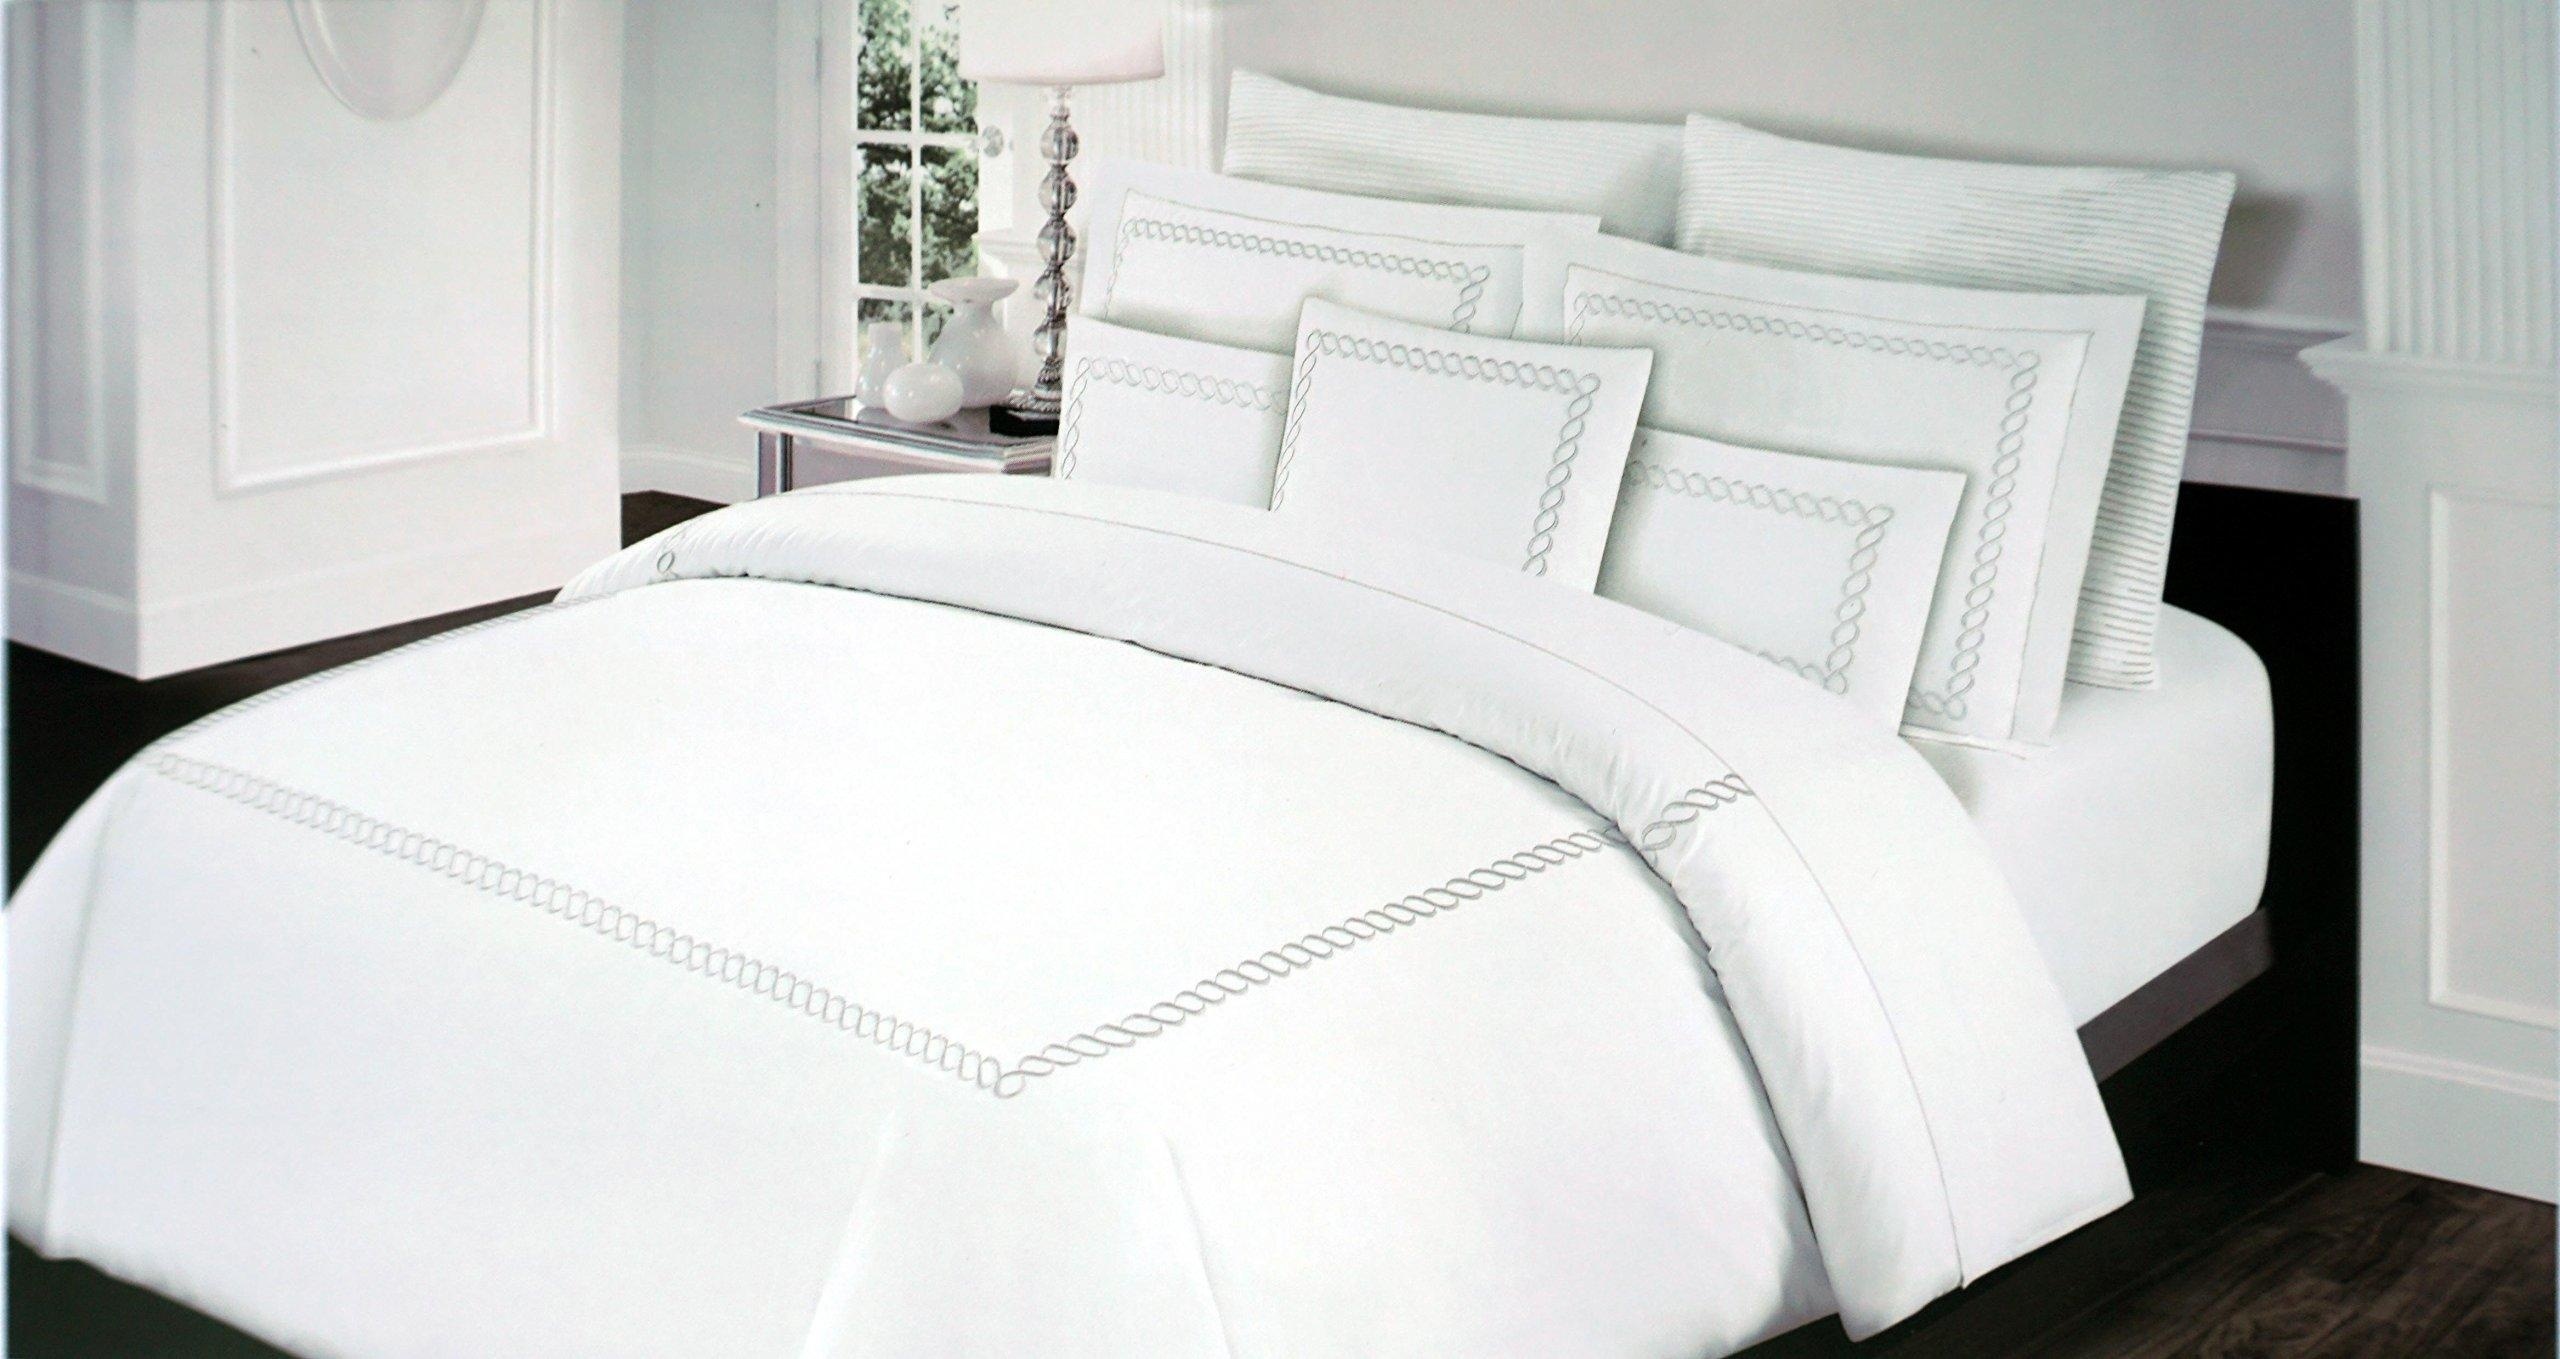 Using White Duvet Cover Queen for Gorgeous Bedroom Decoration Ideas: Duvets Covers | White Duvet Cover Queen | Walmart Duvet Covers